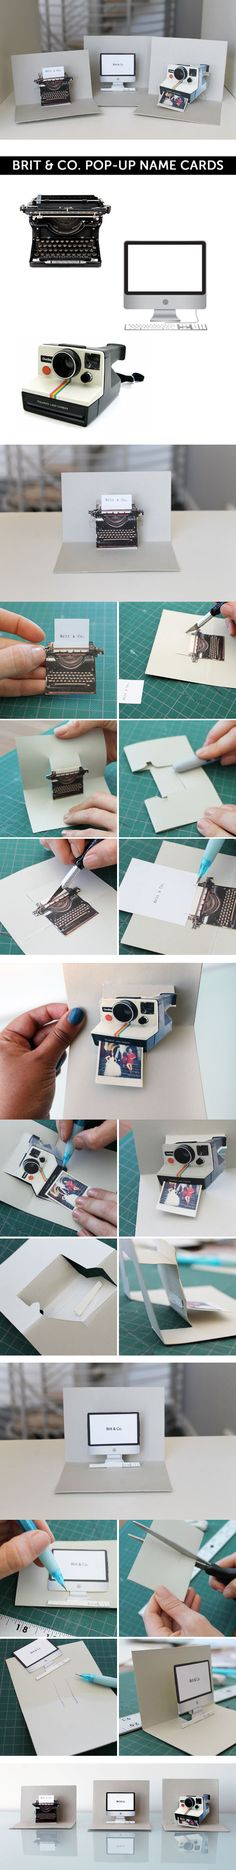 DIY :: Pop up cards (step by step tutorial with printables   http://www.brit.co/pop-goes-the-diy-pop-up-name-card/ )